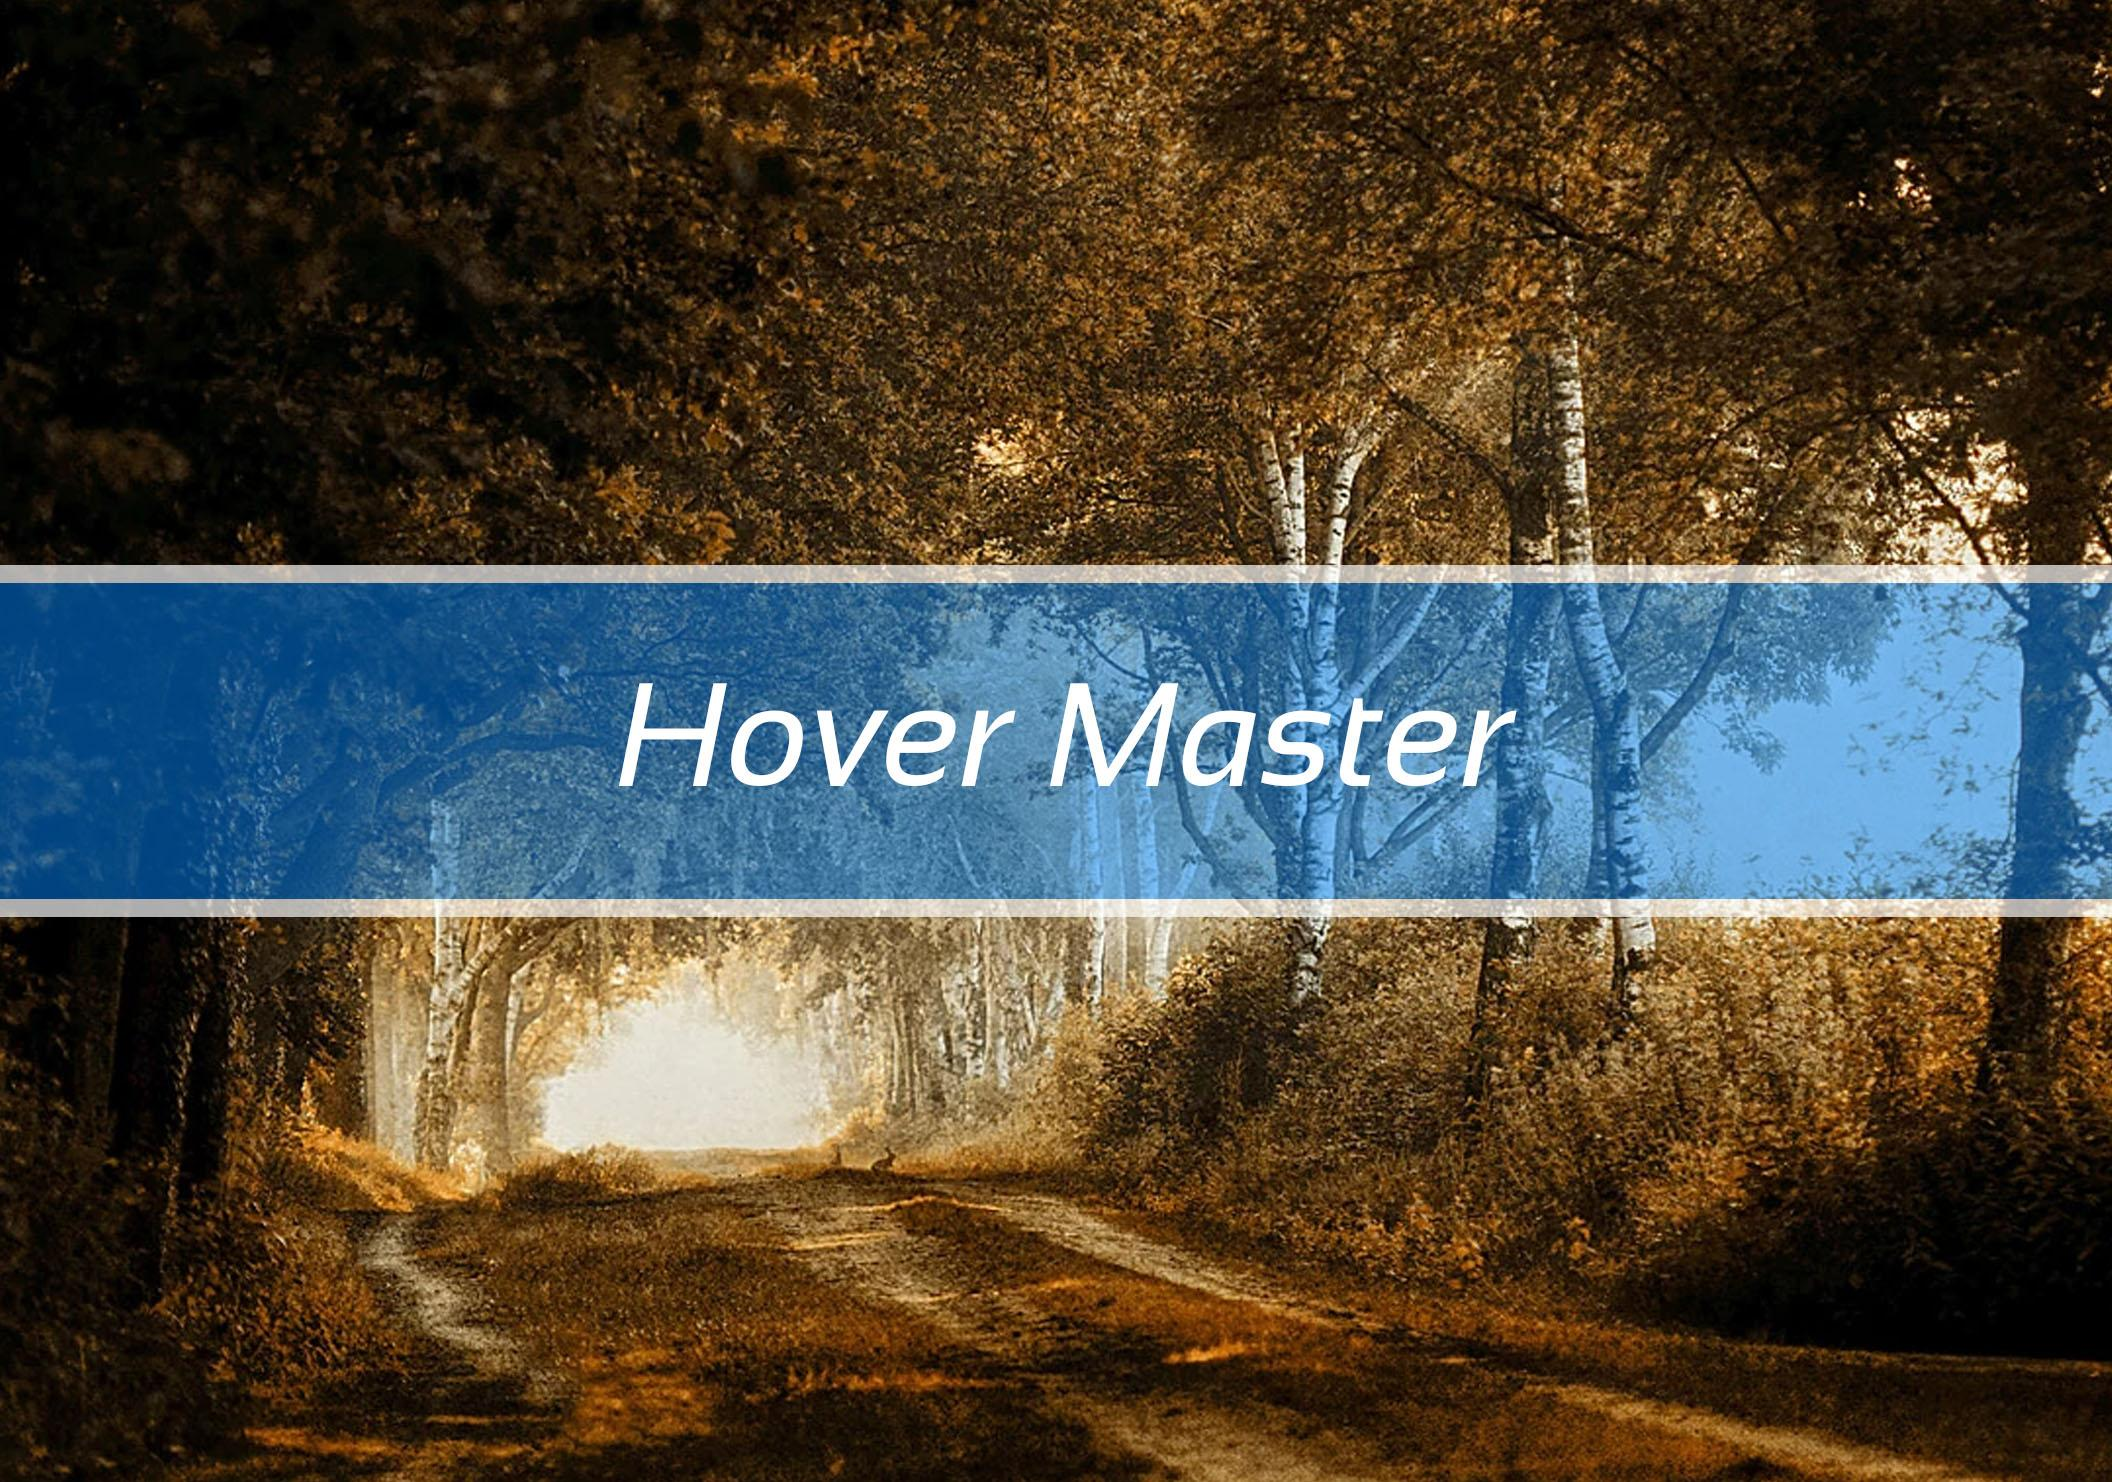 Hover Master